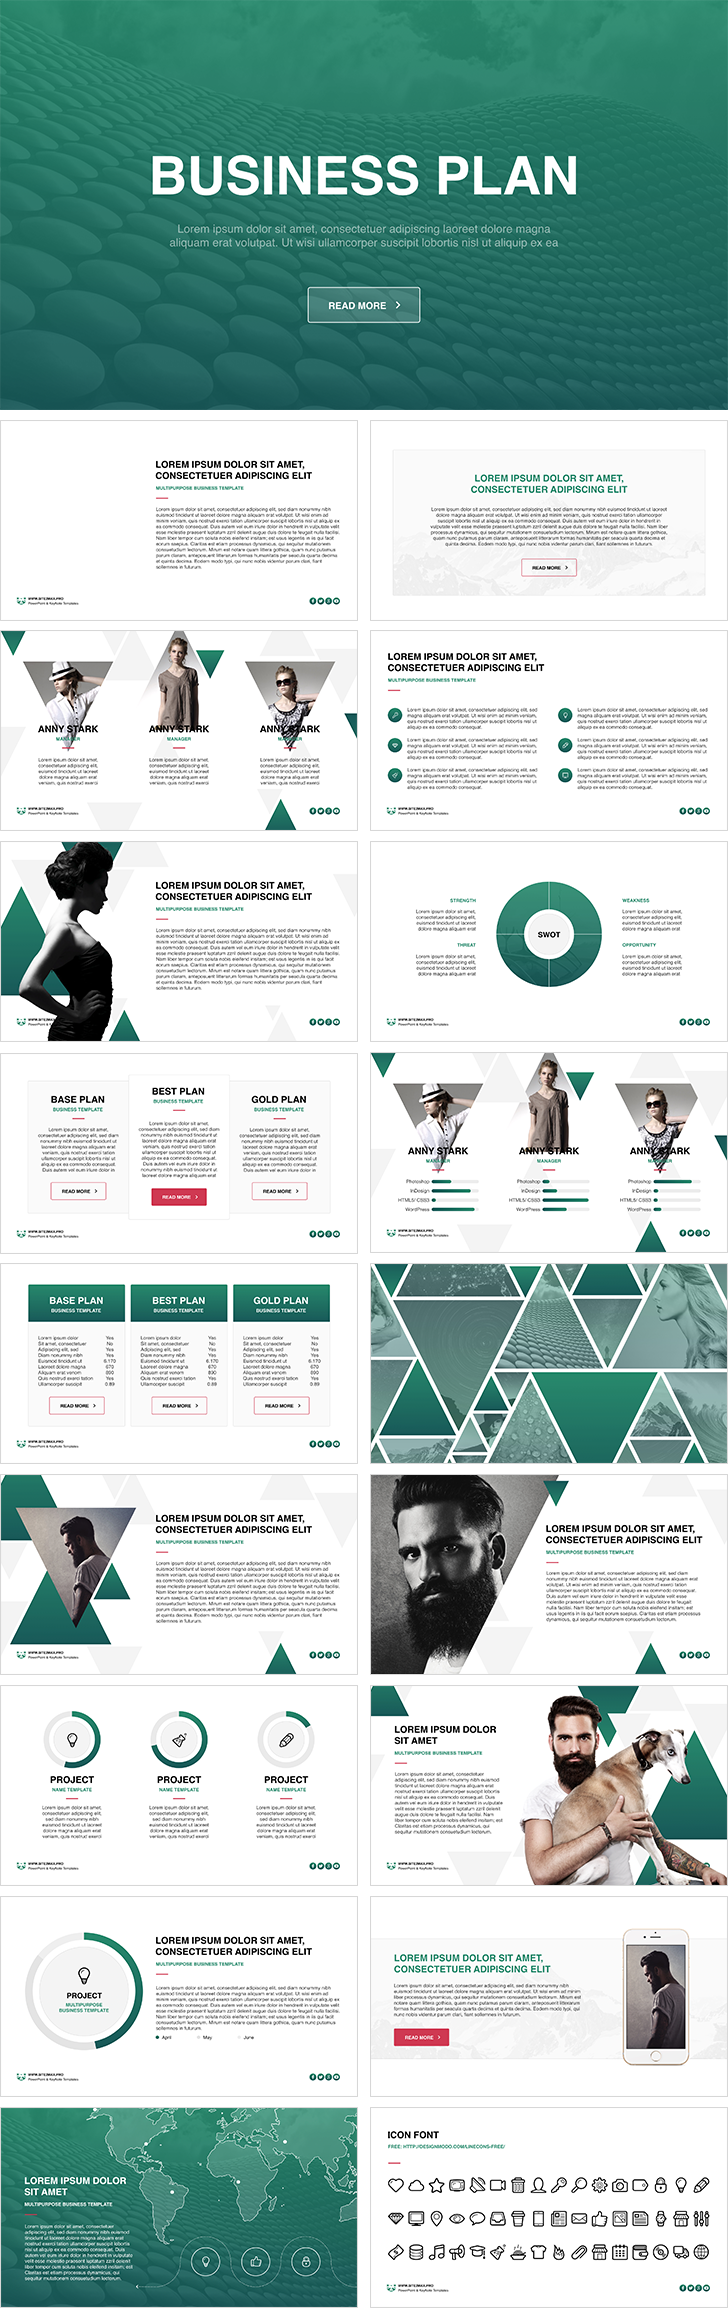 Business plan free powerpoint template download free business plan free powerpoint template wajeb